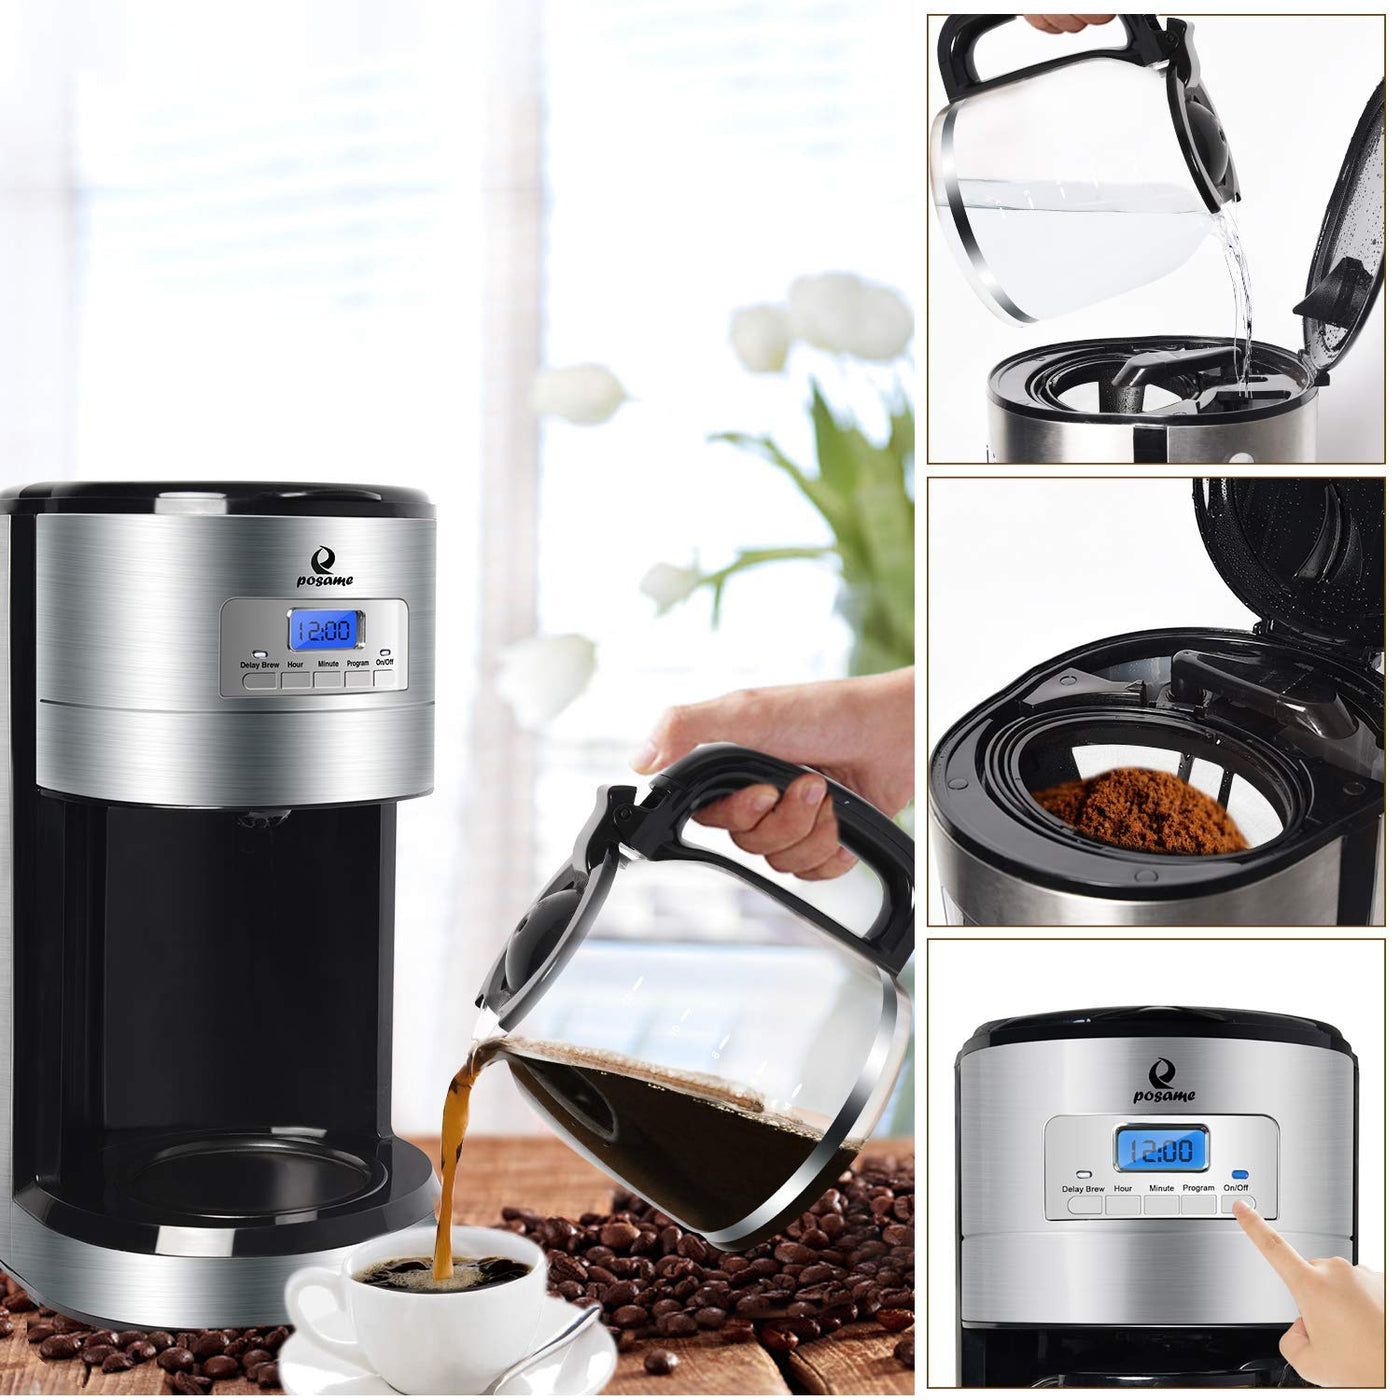 Posame Coffee Maker 12 Cup Programmable Filter Coffee Machine With